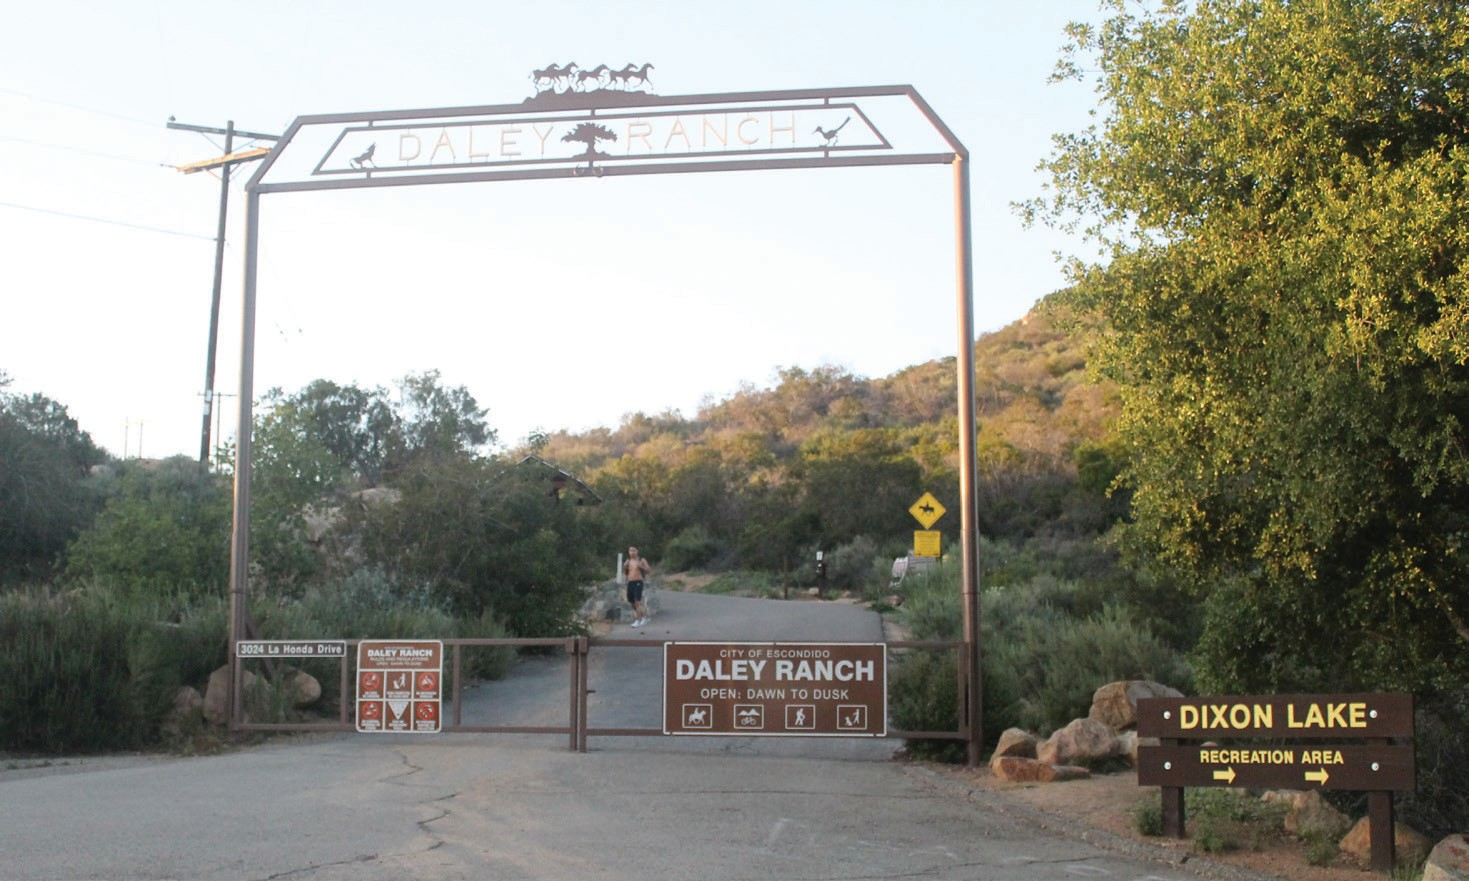 The La Honda entrance to Daley Ranch is located near the Dixon Lake recreation area in North Escondido.